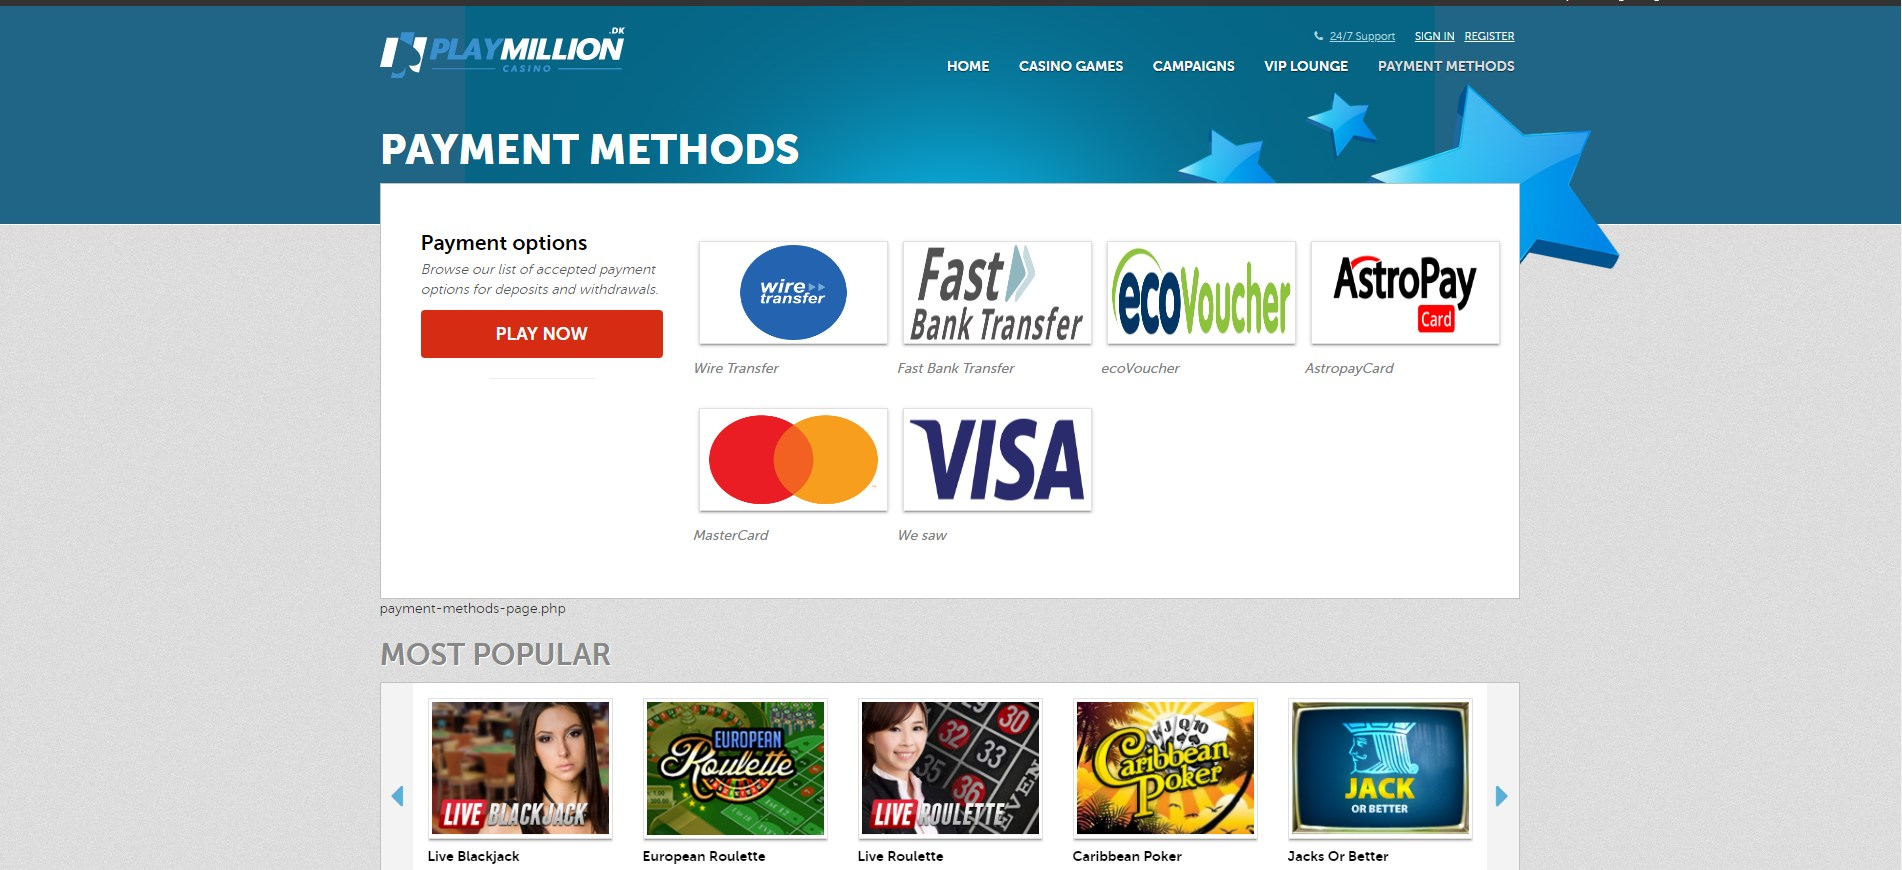 Play Million DK Casino Payment Methods